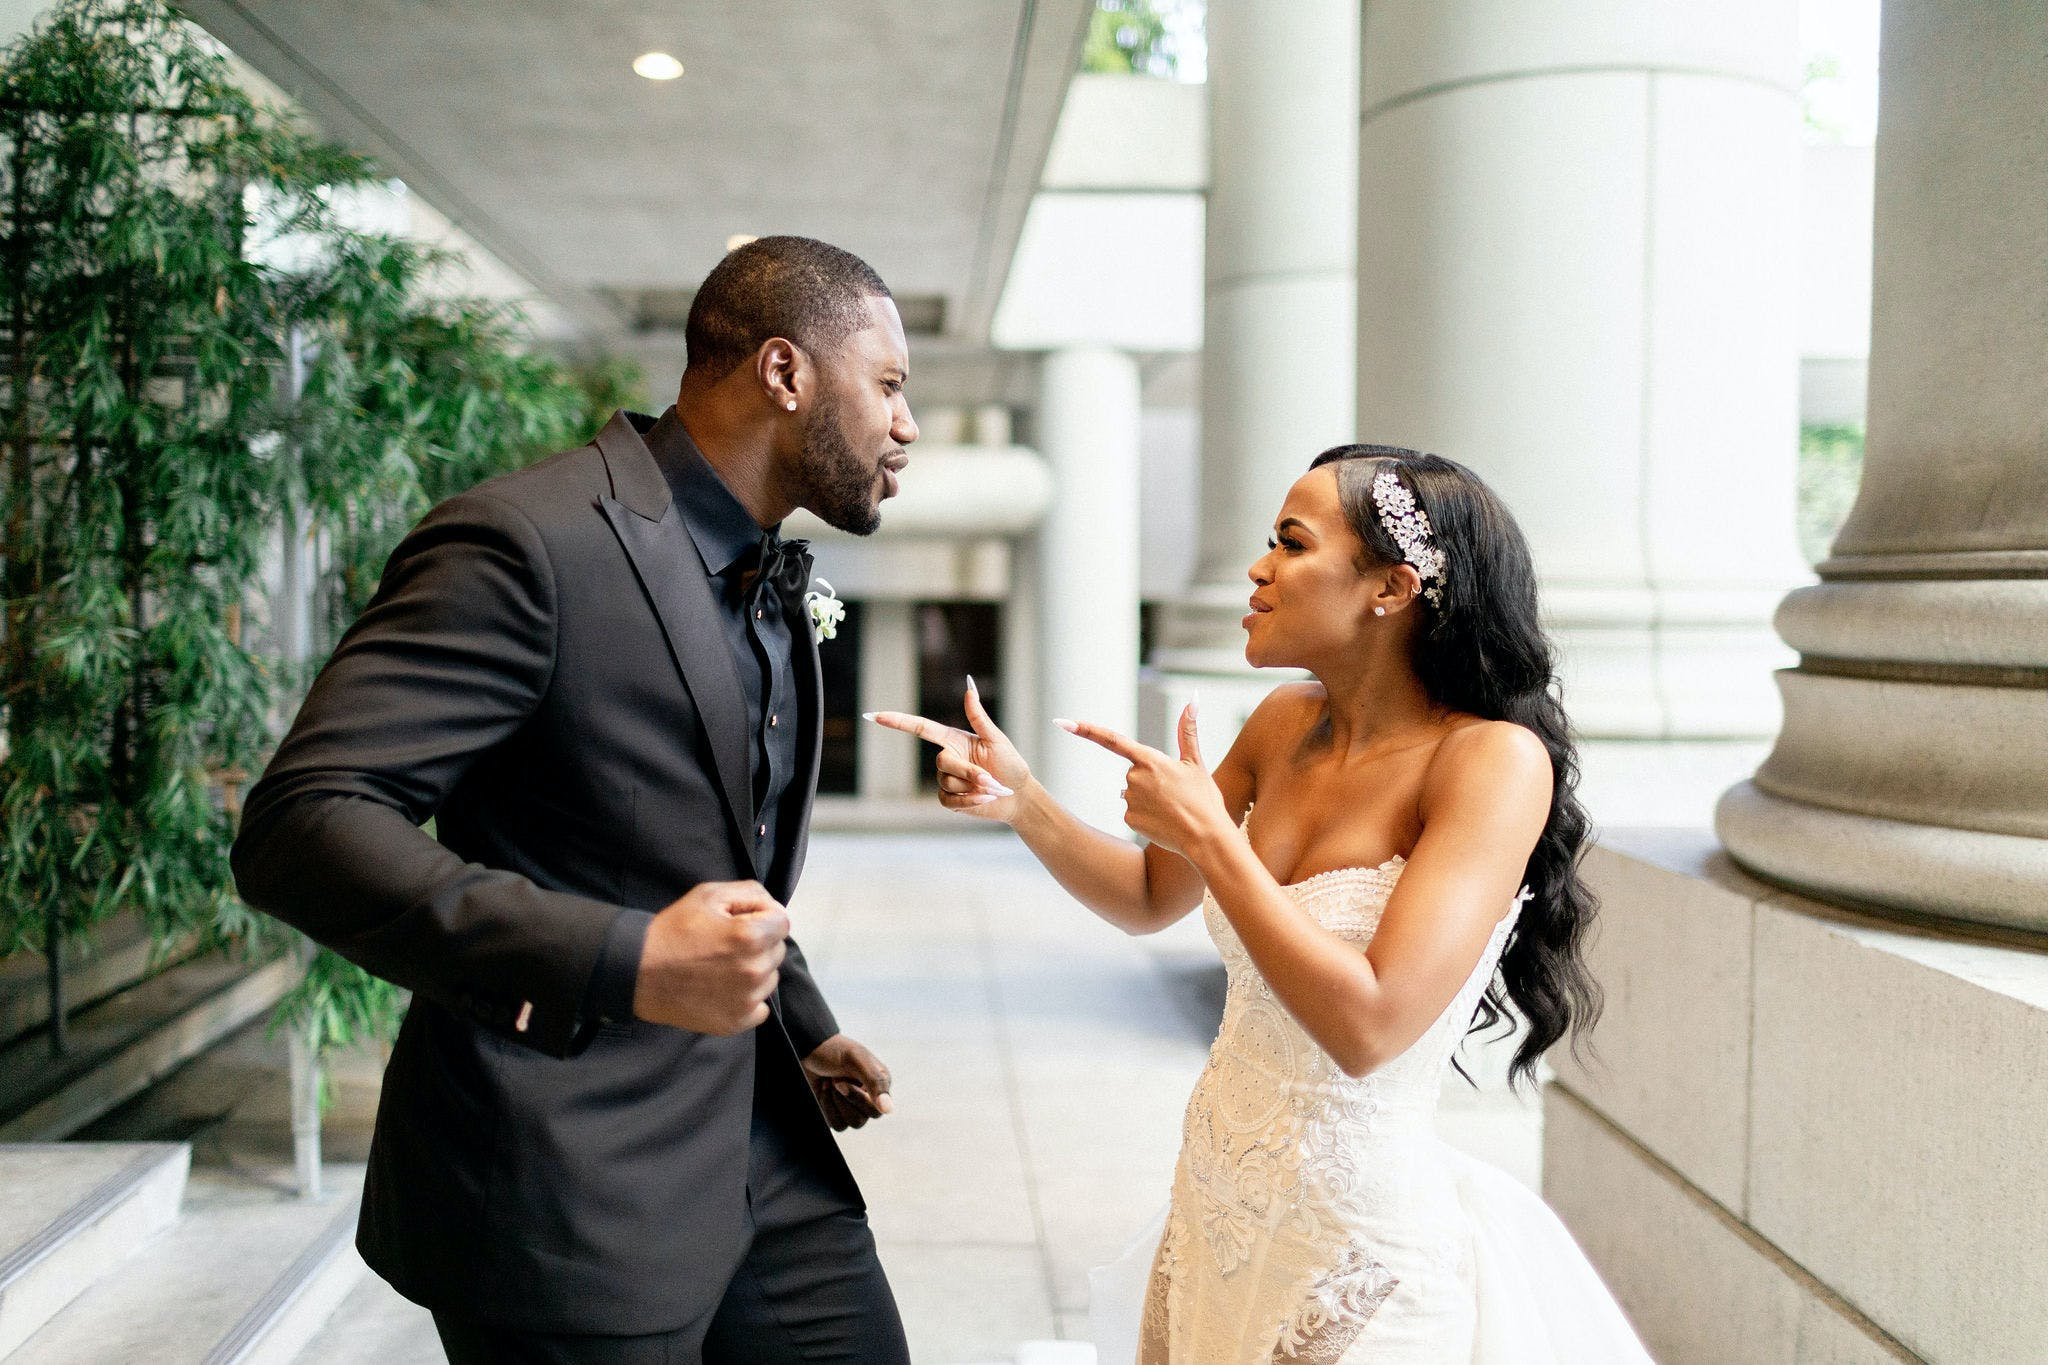 Bride and groom having a silly moment, bride doing finger guns at groom in all black suit   PartySlate